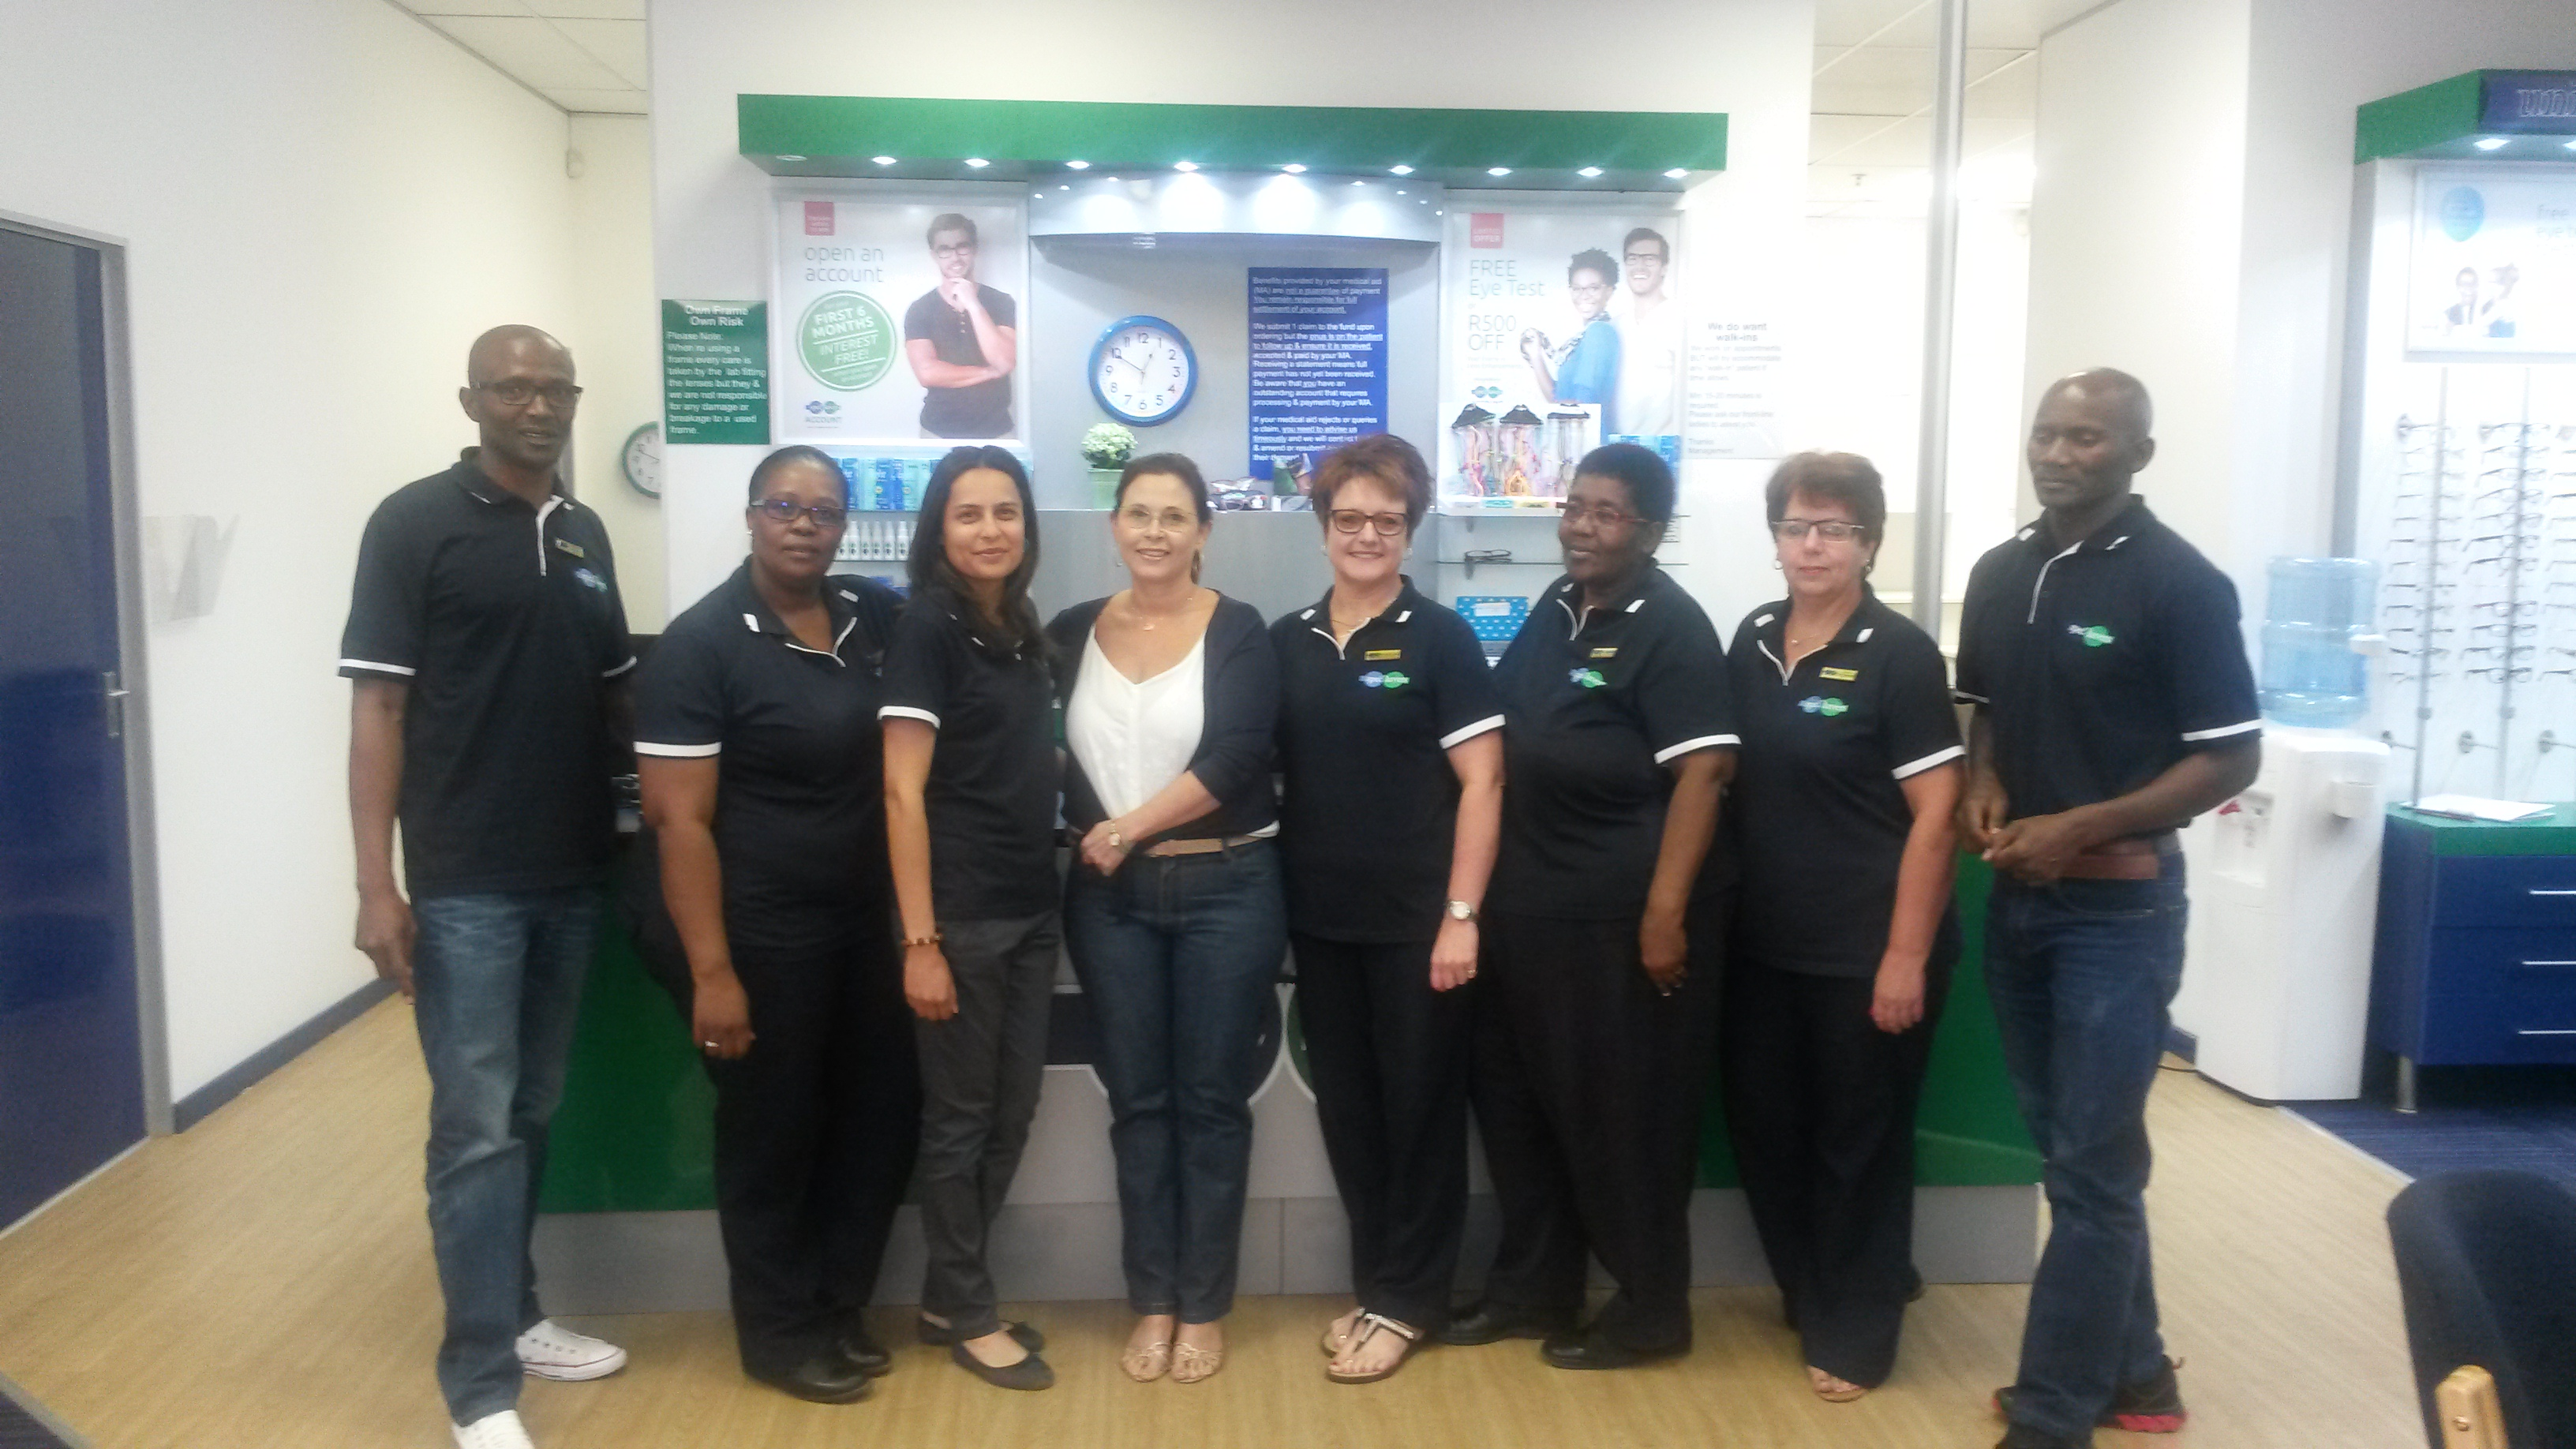 Our dynamic team at Spec-Savers: Alberton Collen Zondo, Portia Mavundla, Nina Madlav, Roan Theologo, Caroline Nortje, Sinah Tsetlo, Anita Rathbone and Wiseman Ngcongo